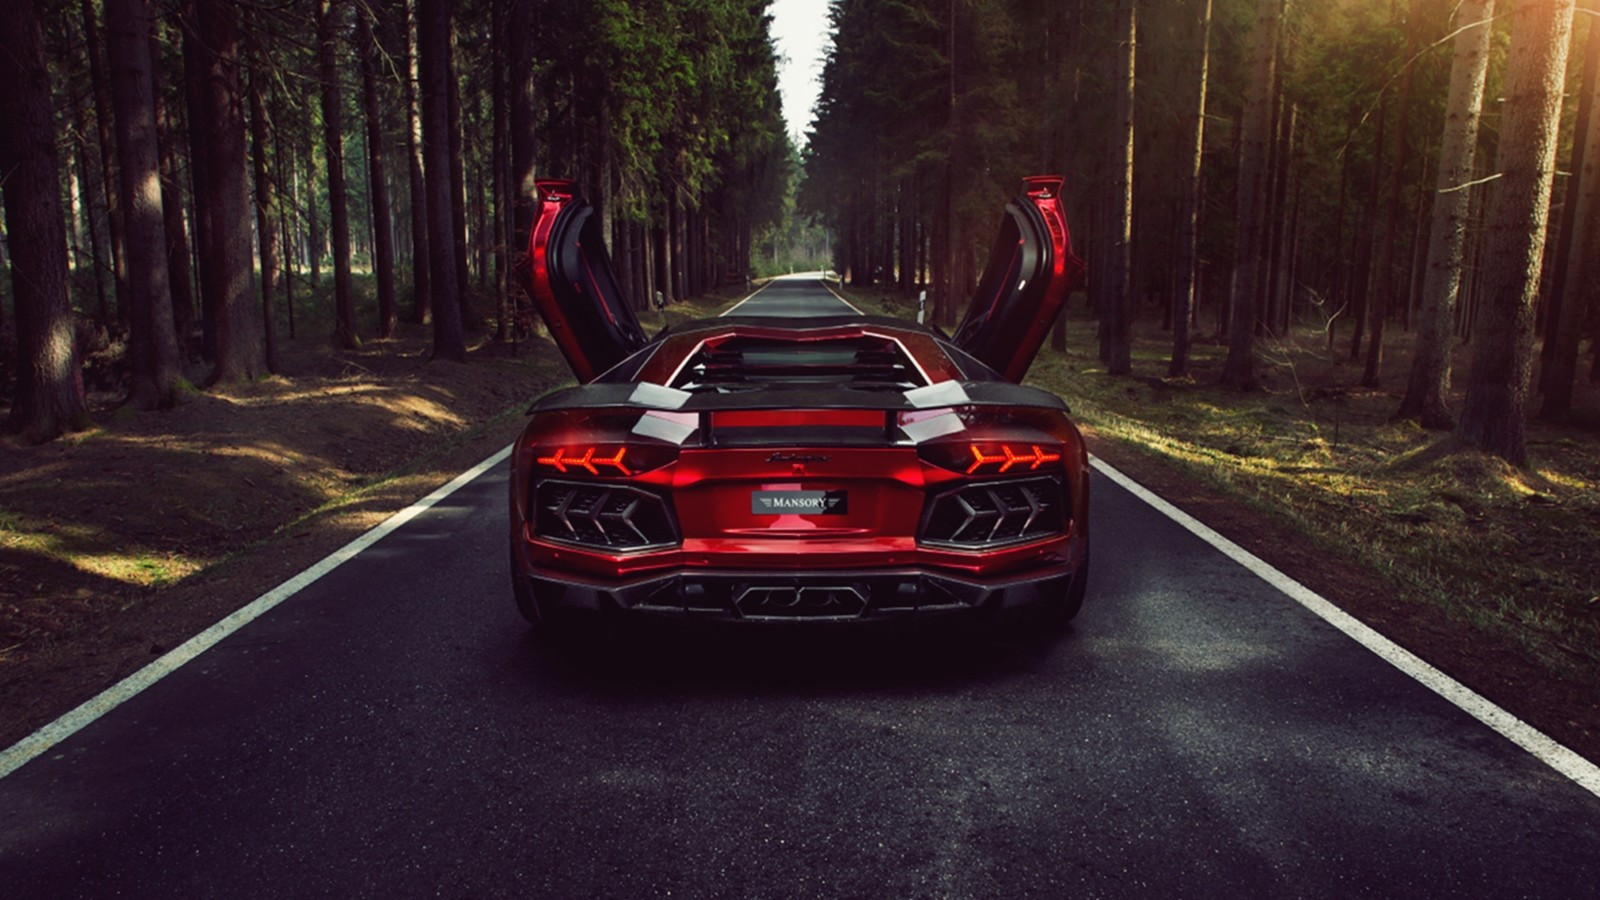 HD Exotic Car Wallpapers